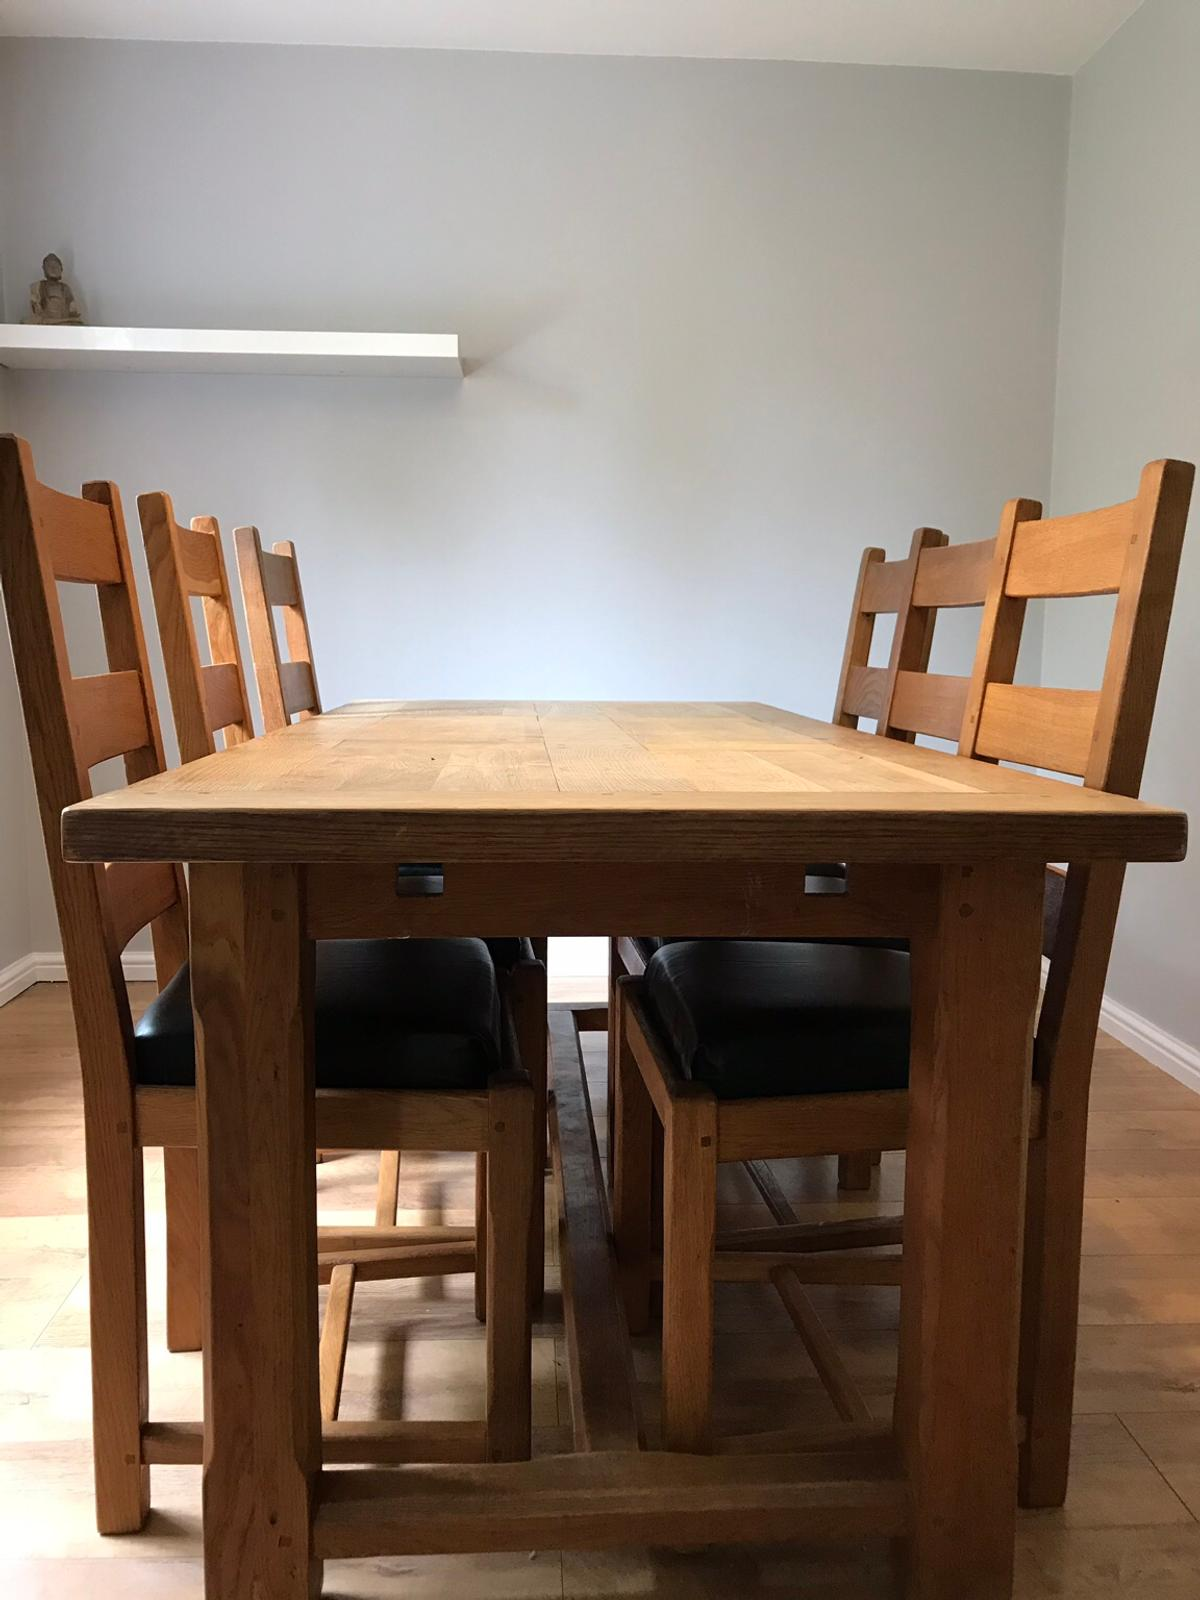 Phenomenal Oak Dining Room Table And Chairs In Nn10 Northamptonshire Ncnpc Chair Design For Home Ncnpcorg